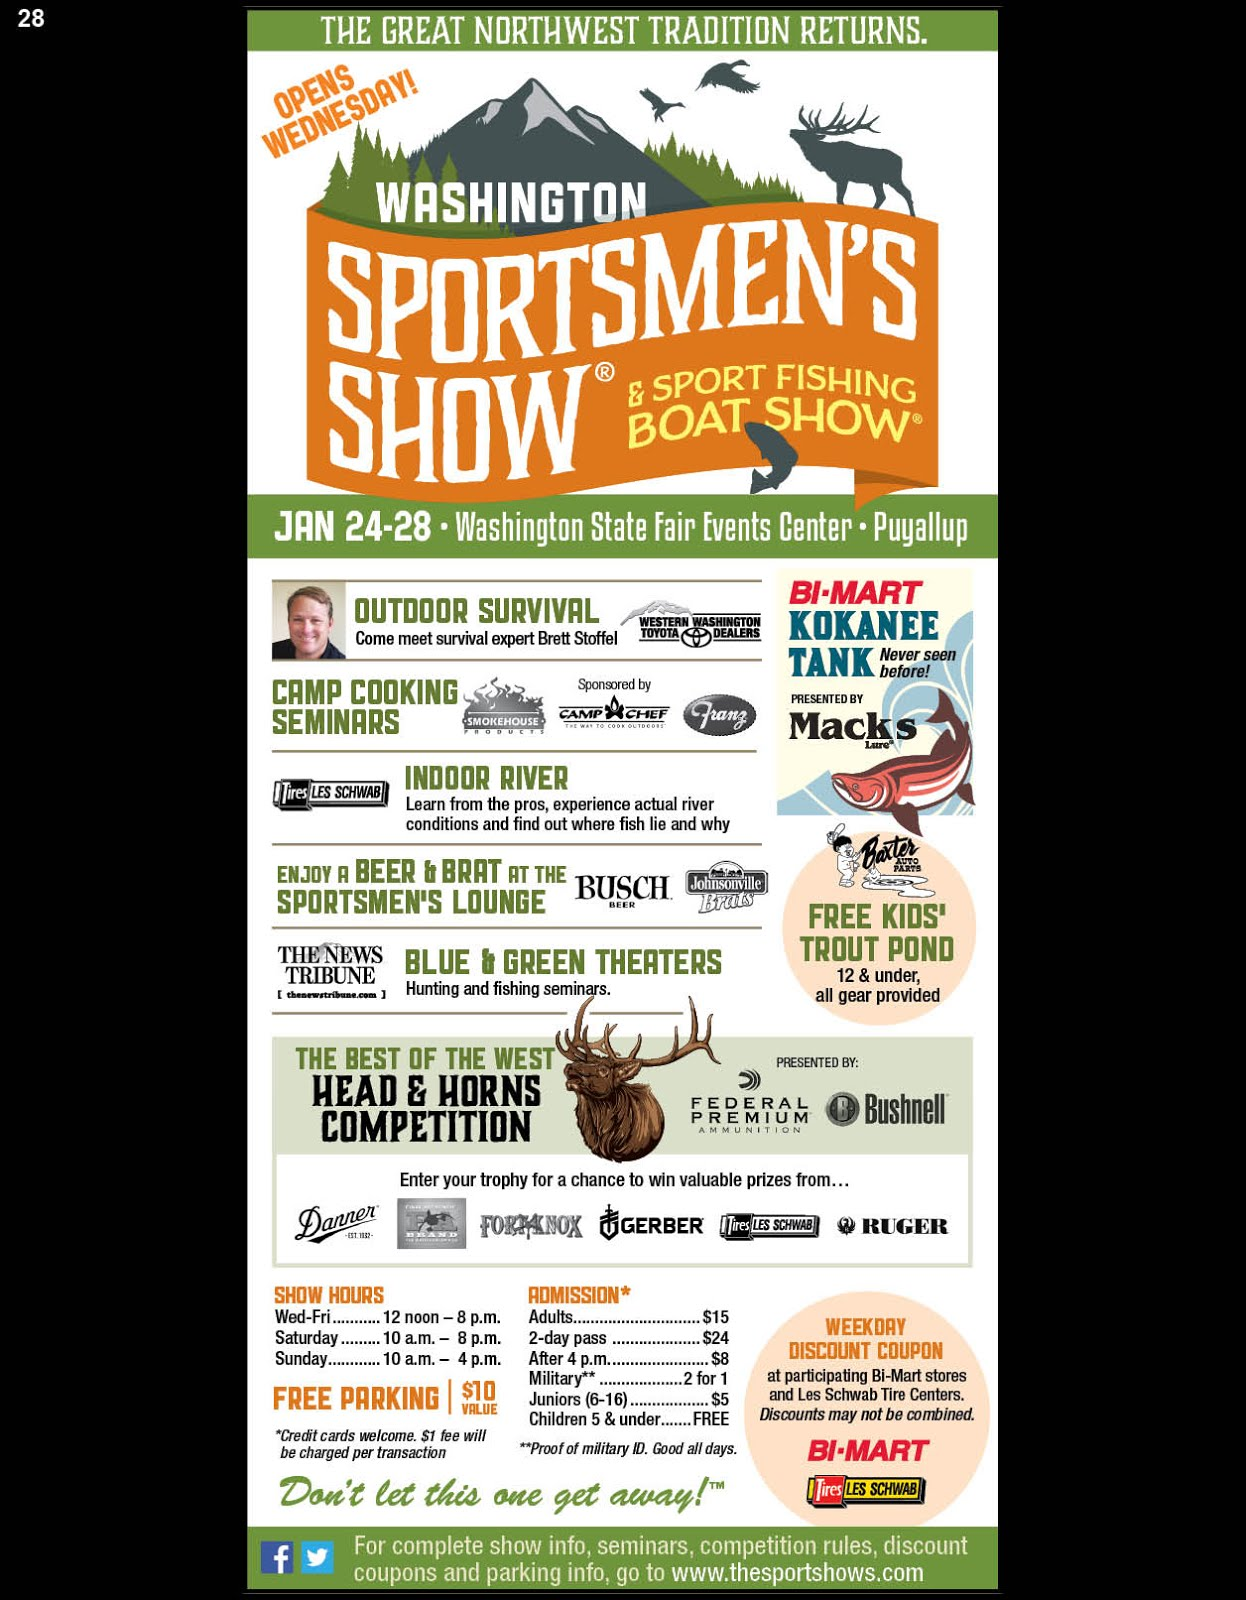 NW Sportsmen's Show & Sport Fishing Boat Show!!